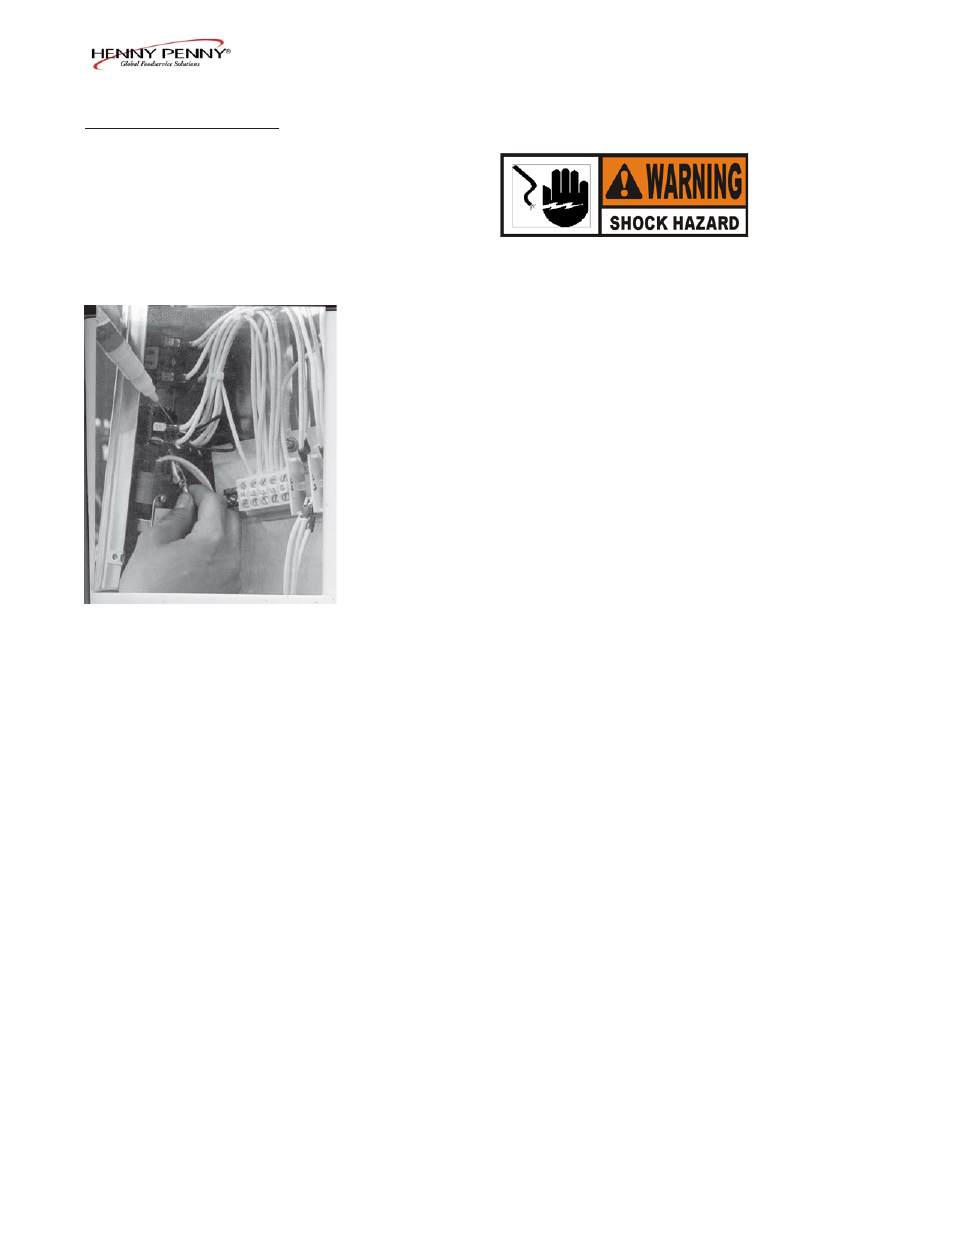 Henny Penny Hcs 2 User Manual Page 16 59 Also For Hcw Turn Off The Power To Circuit At Electrical Panel